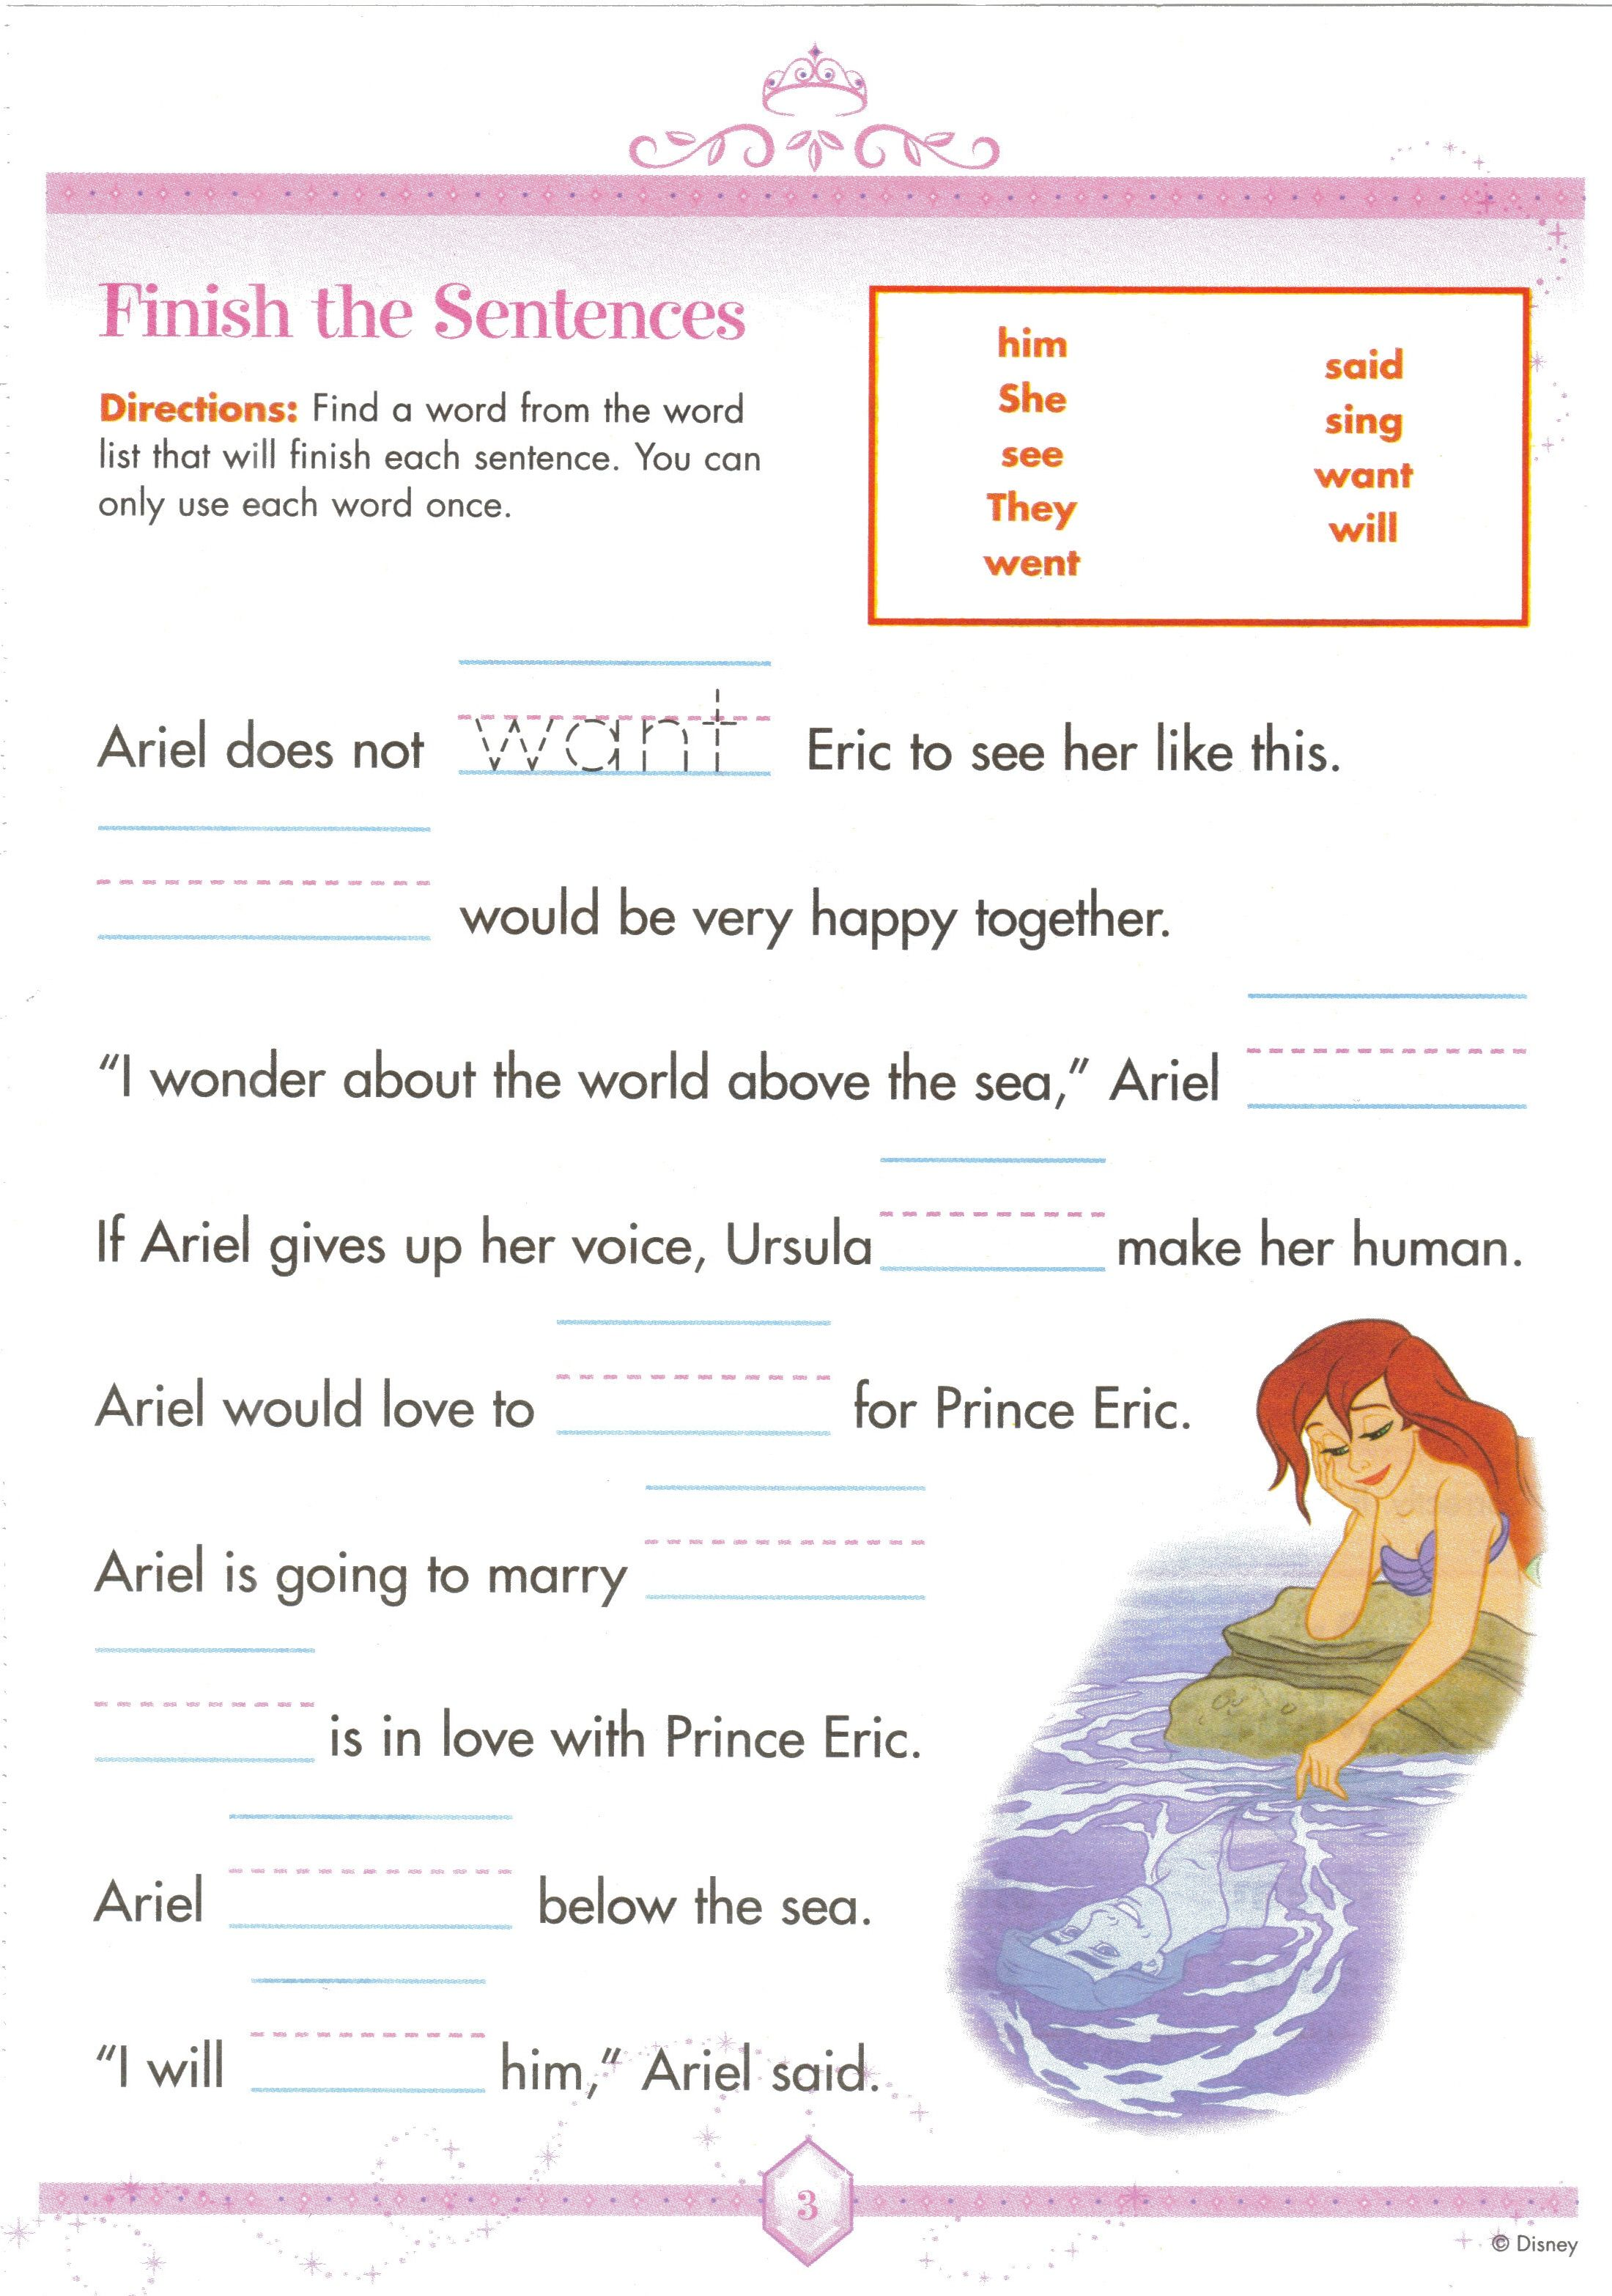 Weirdmailus  Sweet  Images About Worksheets On Pinterest  Fun Facts For Kids  With Luxury  Images About Worksheets On Pinterest  Fun Facts For Kids Earth Day Worksheets And Jungles With Alluring Columbus Worksheet Also Rock And Minerals Worksheets In Addition Present Participle Worksheet And Rd Grade Sight Words Worksheets As Well As Merge Two Excel Worksheets Additionally Family Members Worksheet From Pinterestcom With Weirdmailus  Luxury  Images About Worksheets On Pinterest  Fun Facts For Kids  With Alluring  Images About Worksheets On Pinterest  Fun Facts For Kids Earth Day Worksheets And Jungles And Sweet Columbus Worksheet Also Rock And Minerals Worksheets In Addition Present Participle Worksheet From Pinterestcom